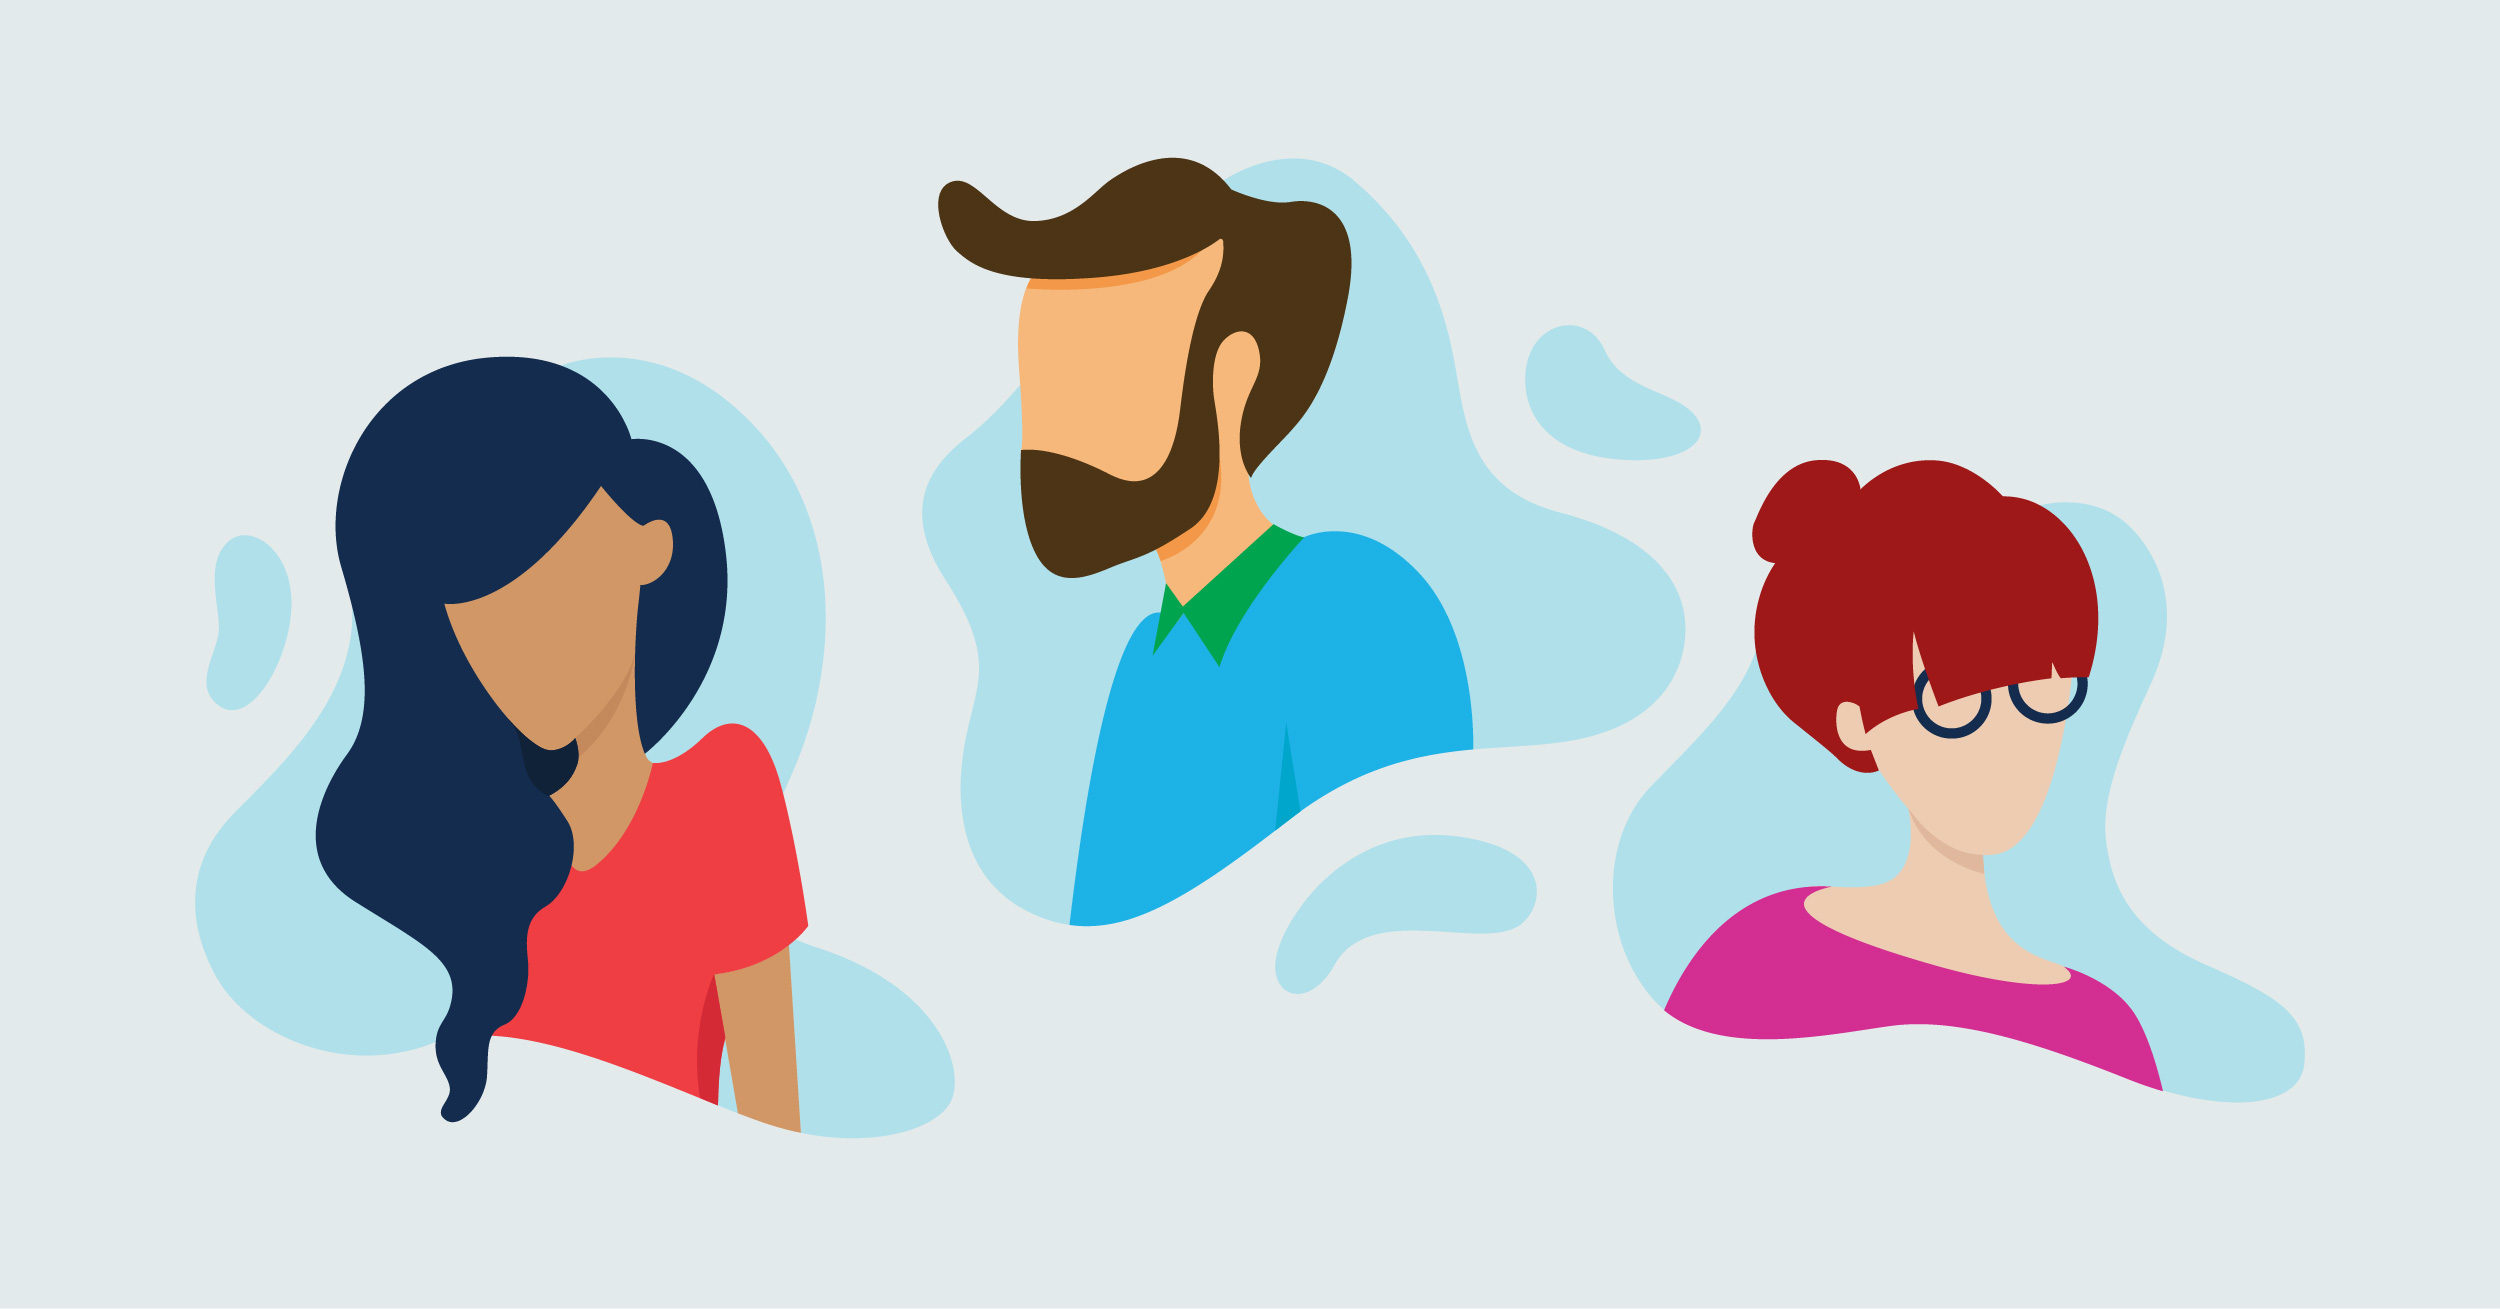 Speak to the Right People: Why You Need Customer Personas